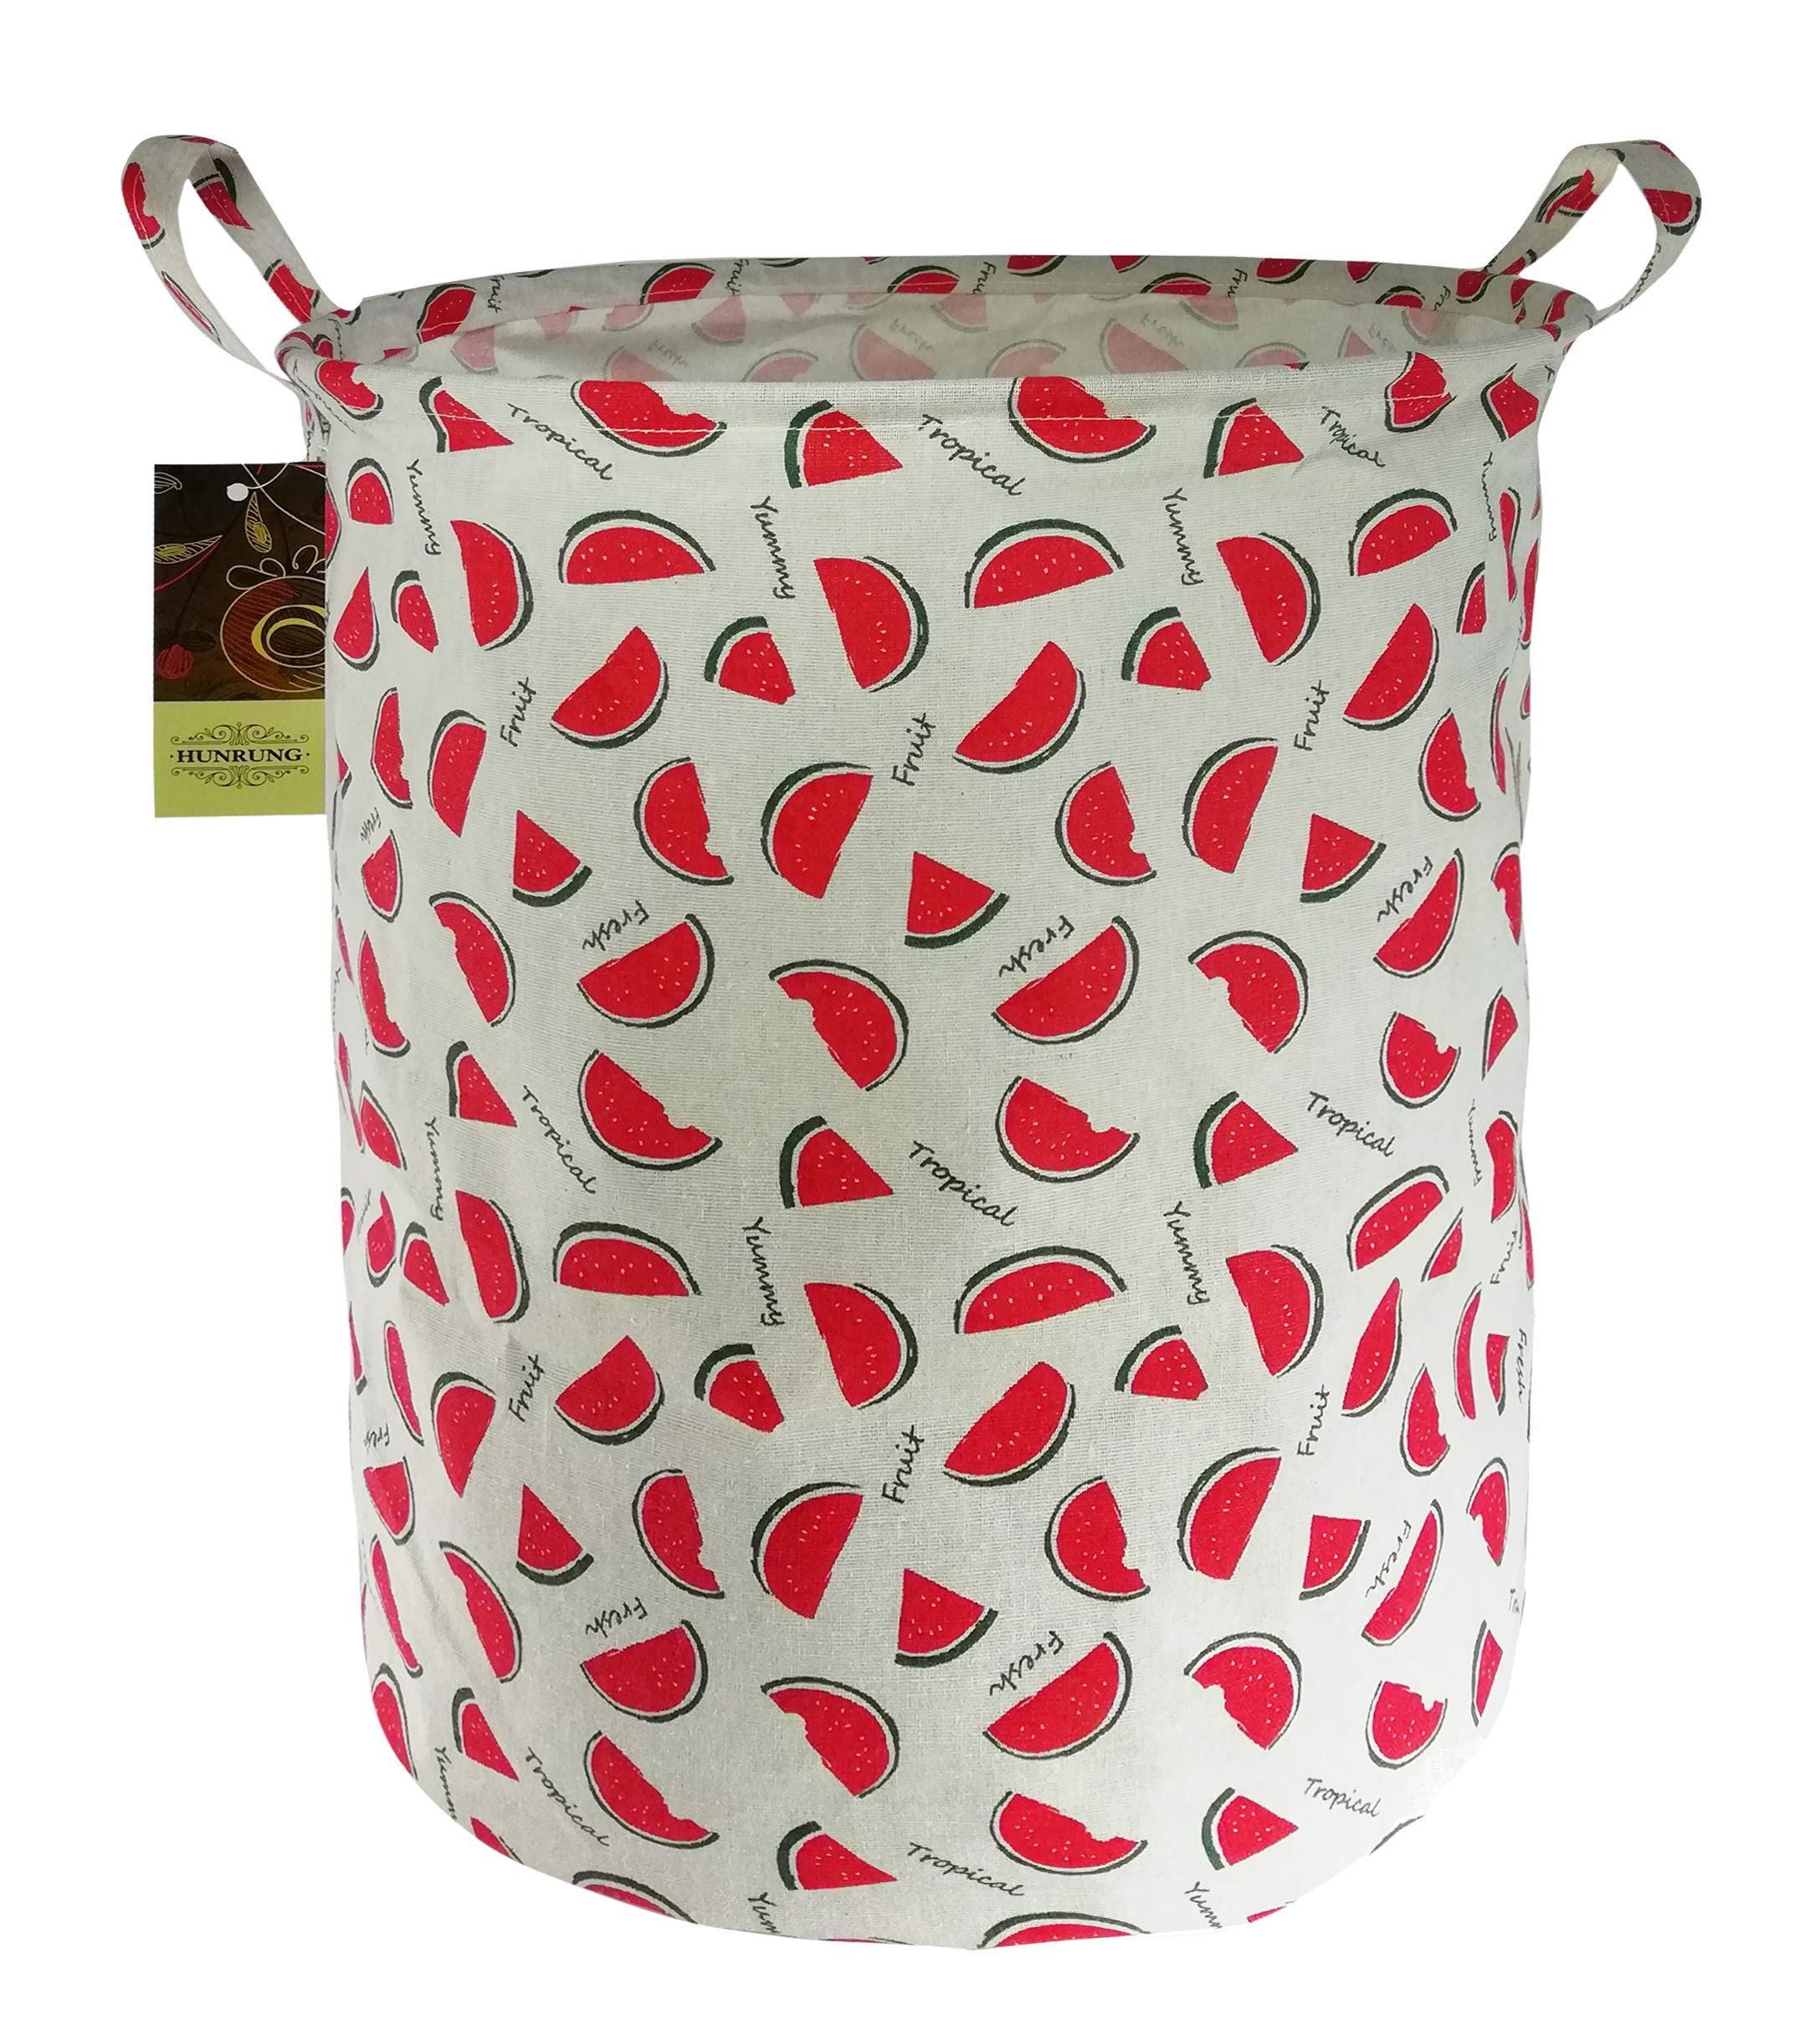 HUNRUNG Large Canvas Fabric Lightweight Storage Basket/Toy Organizer/Dirty clothes Collapsible Waterproof for College Dorms, Kids Bedroom,Bathroom,Laundry Hamper (watermelon)